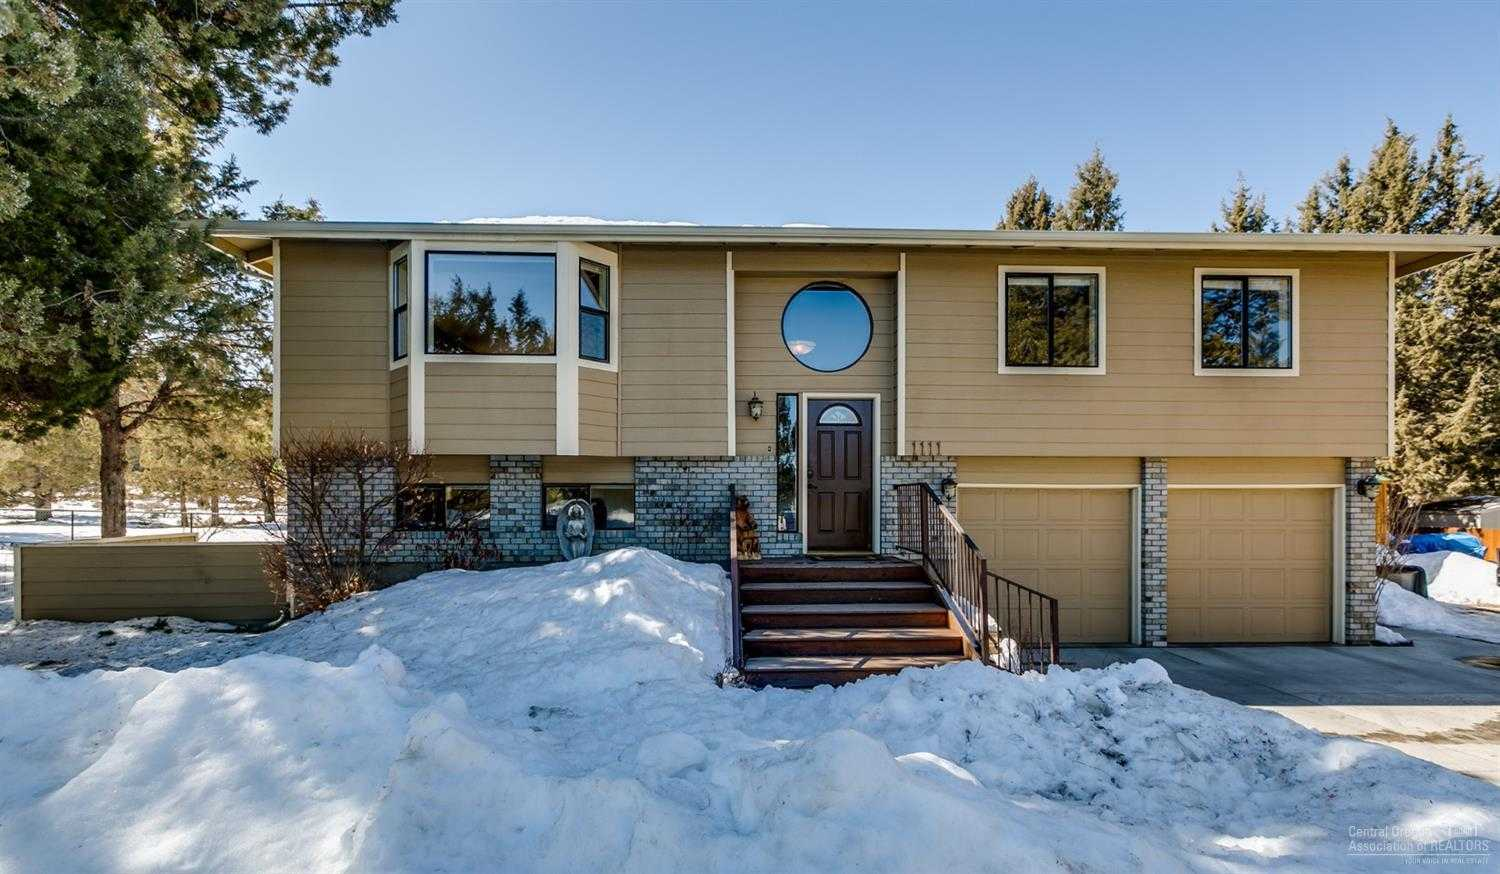 $419,900 - 4Br/3Ba -  for Sale in Bend